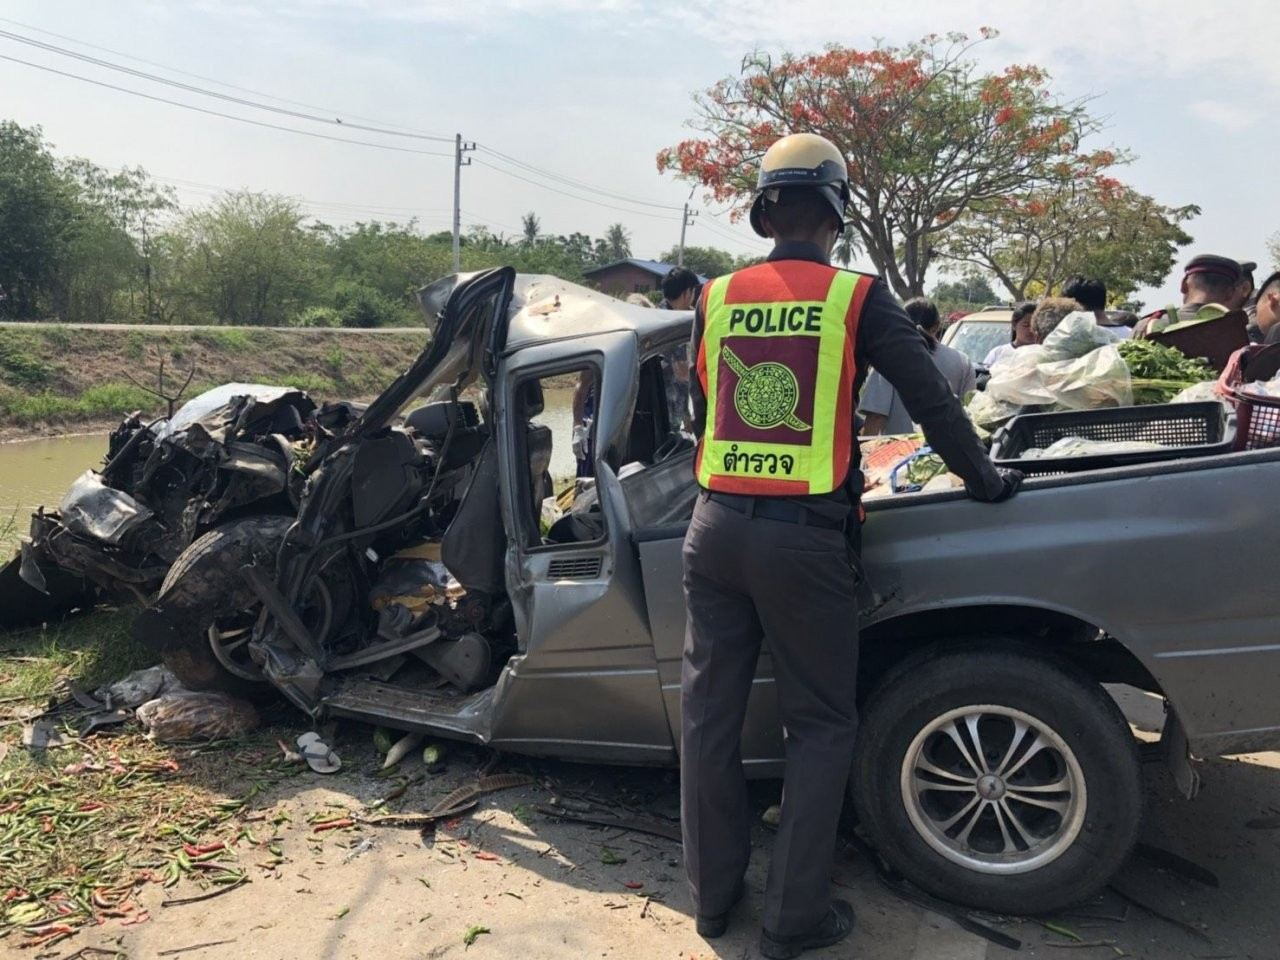 Thailand to adopt some of Japan's road safety measures | The Thaiger